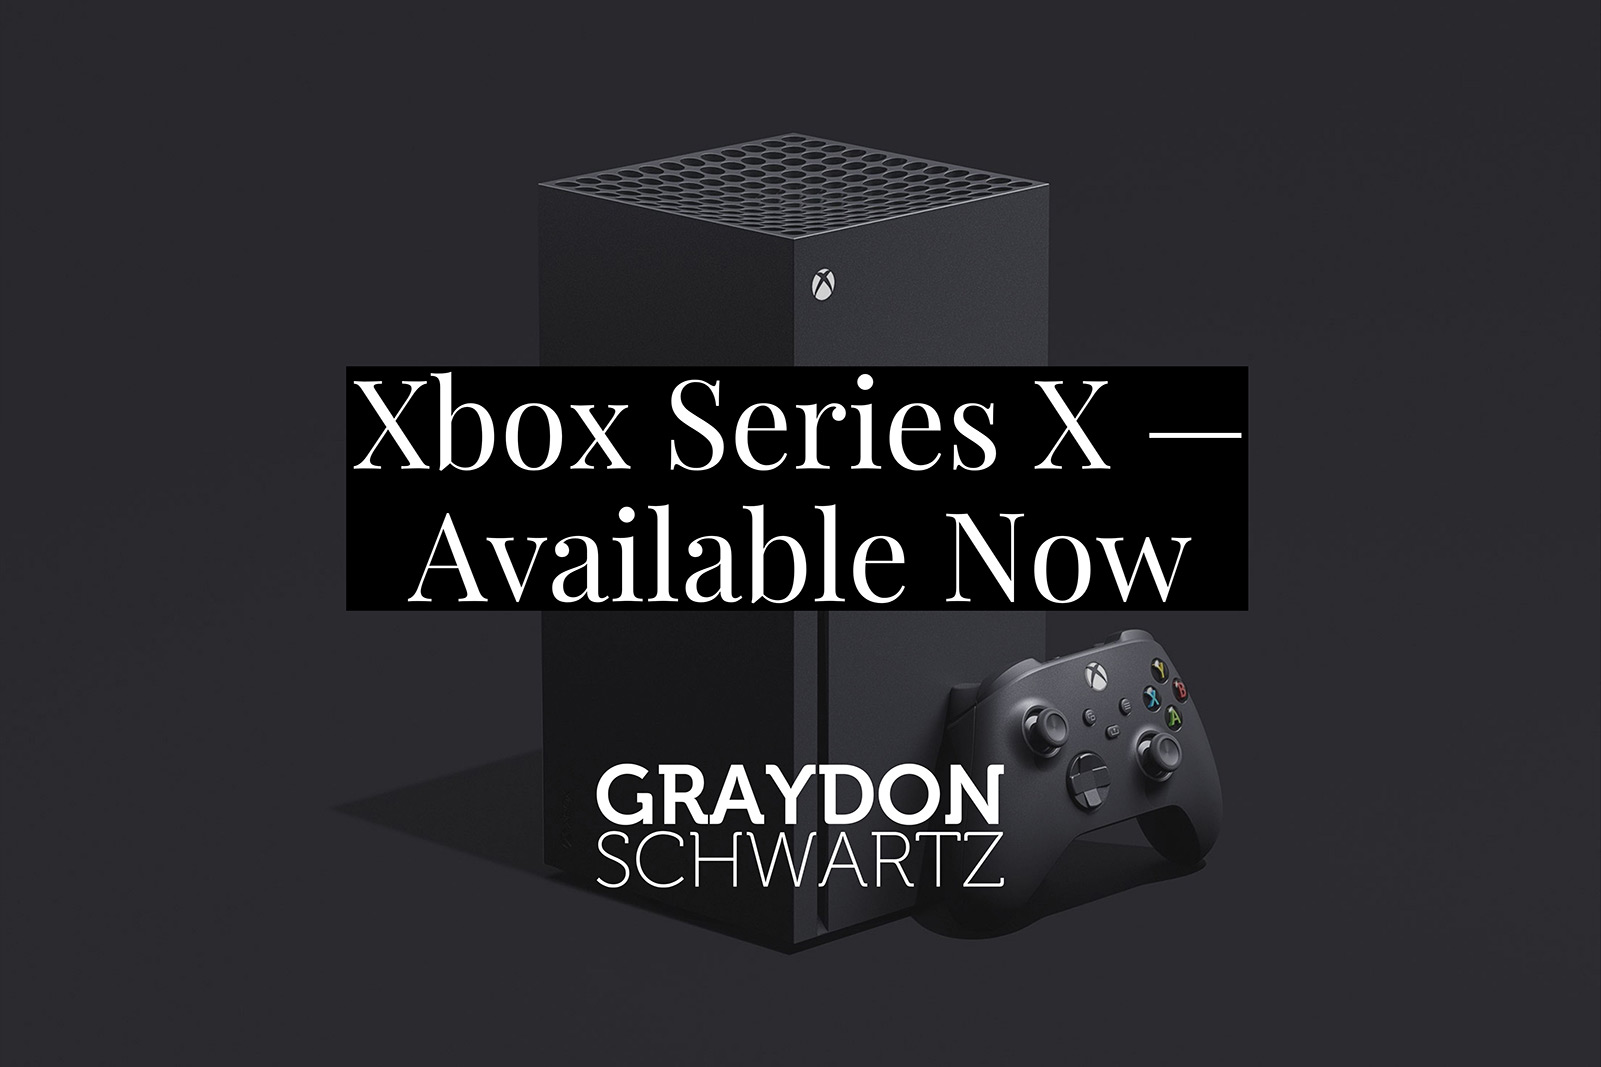 Xbox Series X — Available Now